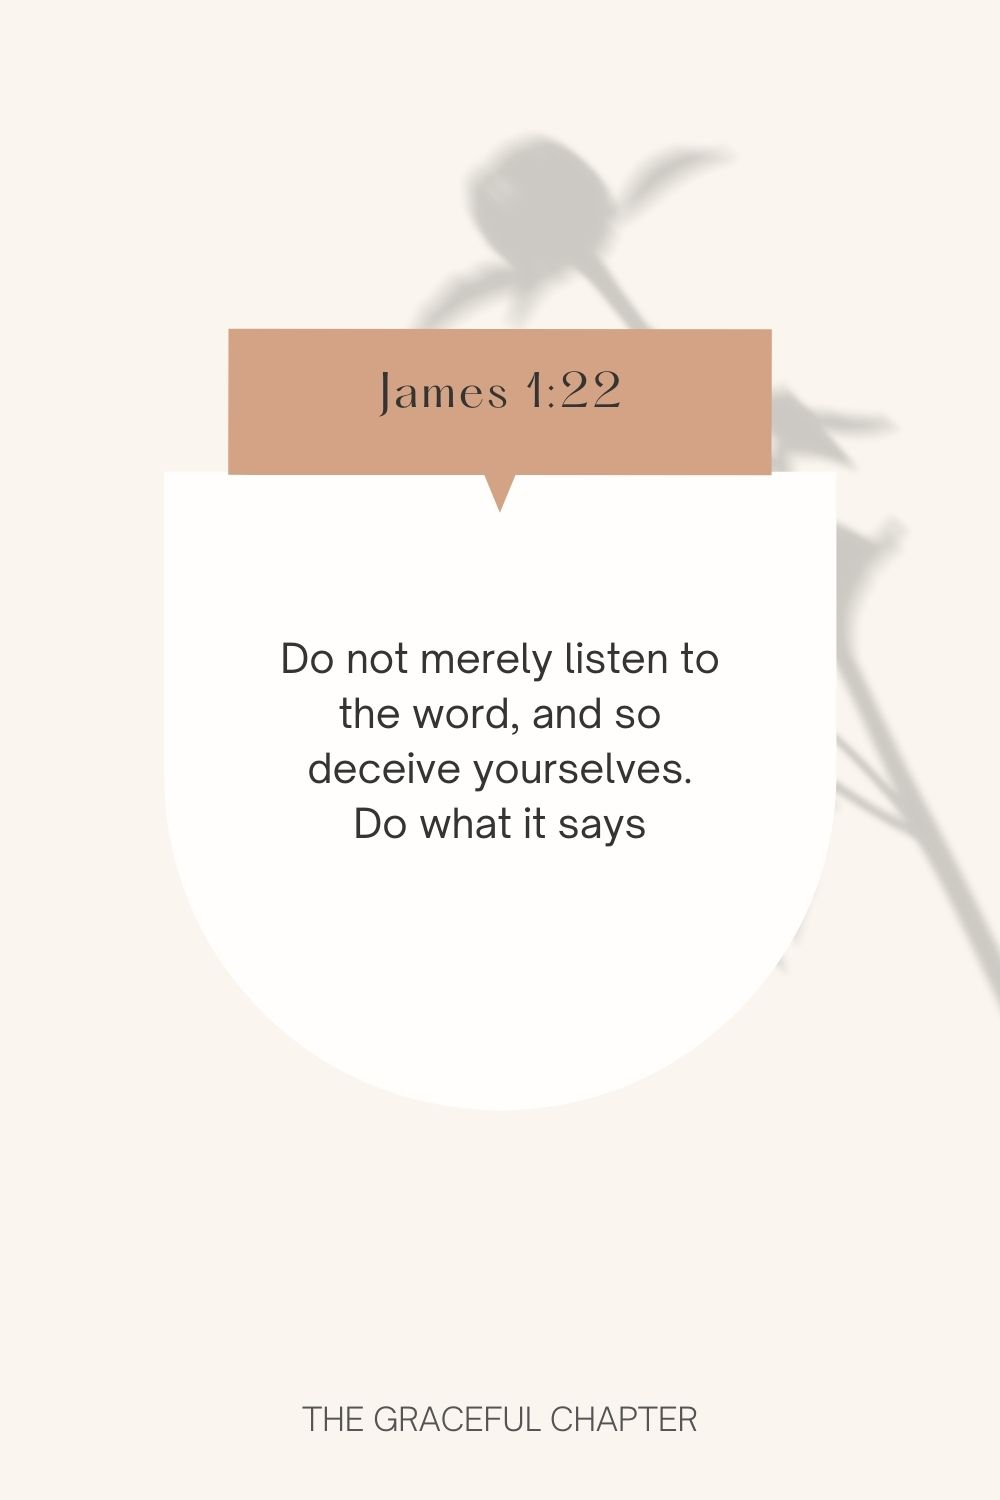 Do not merely listen to the word, and so deceive yourselves. Do what it says. James 1:22